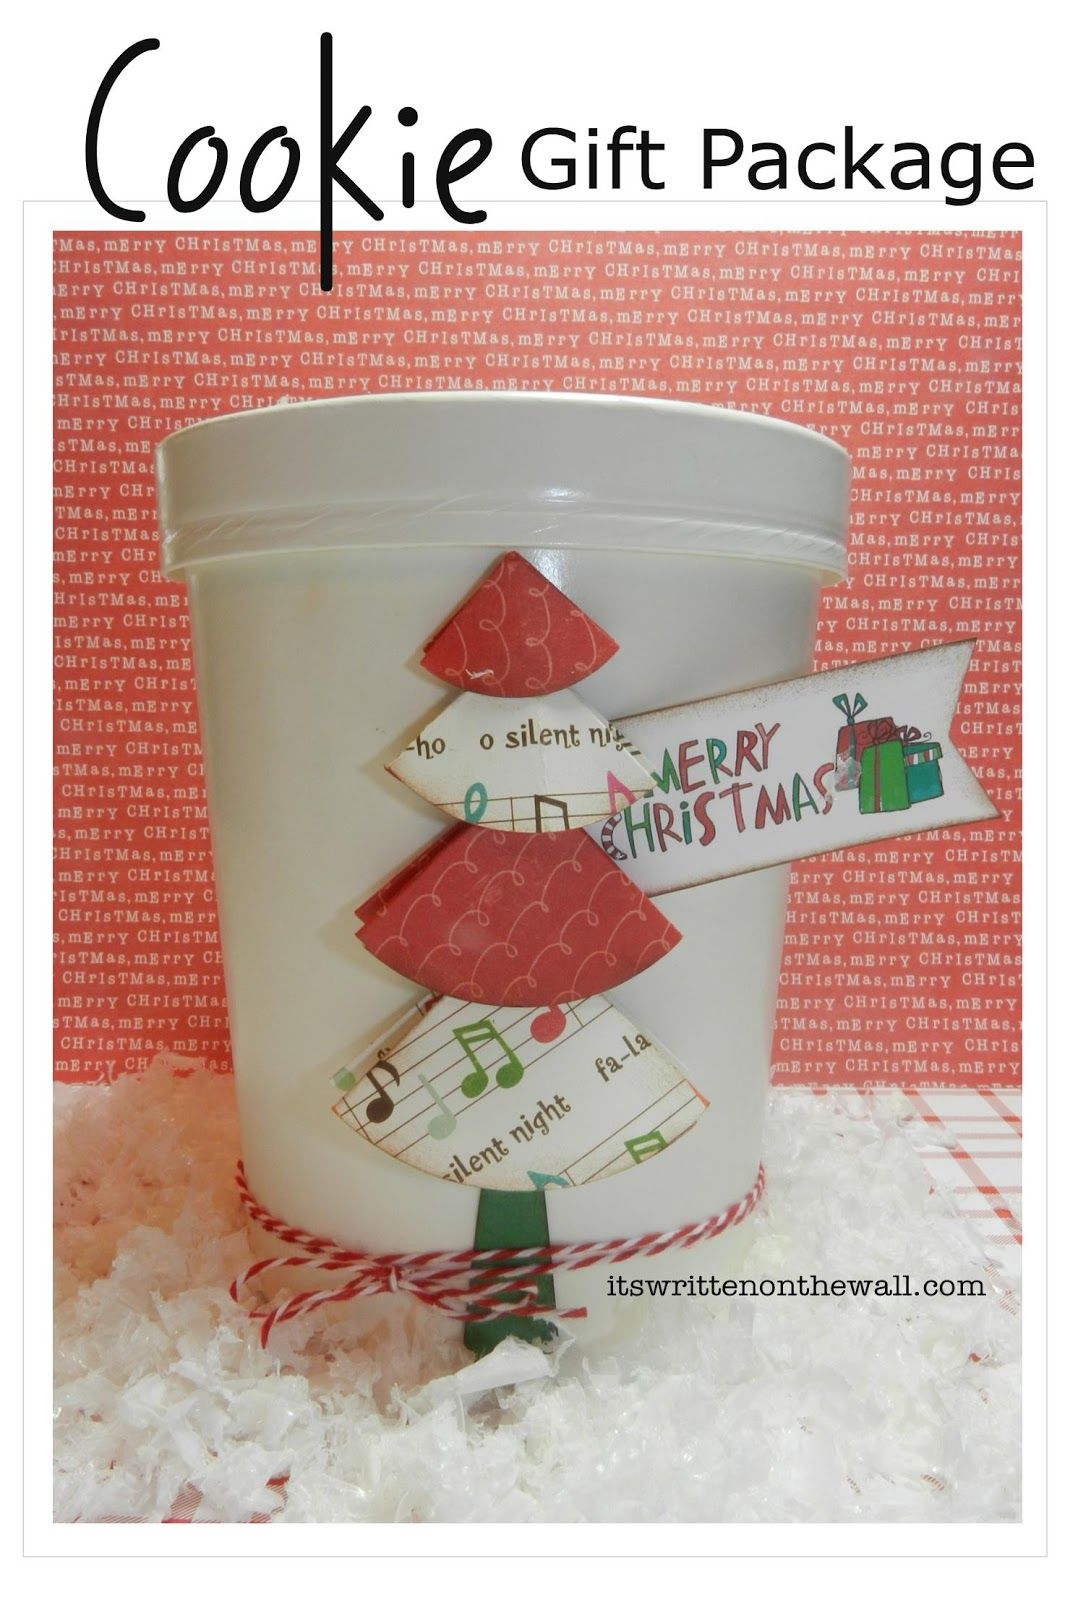 Homemade Gift Ideas Homemade Christmas Gifts Neighbor Christmas Gifts Christmas Food Crafts